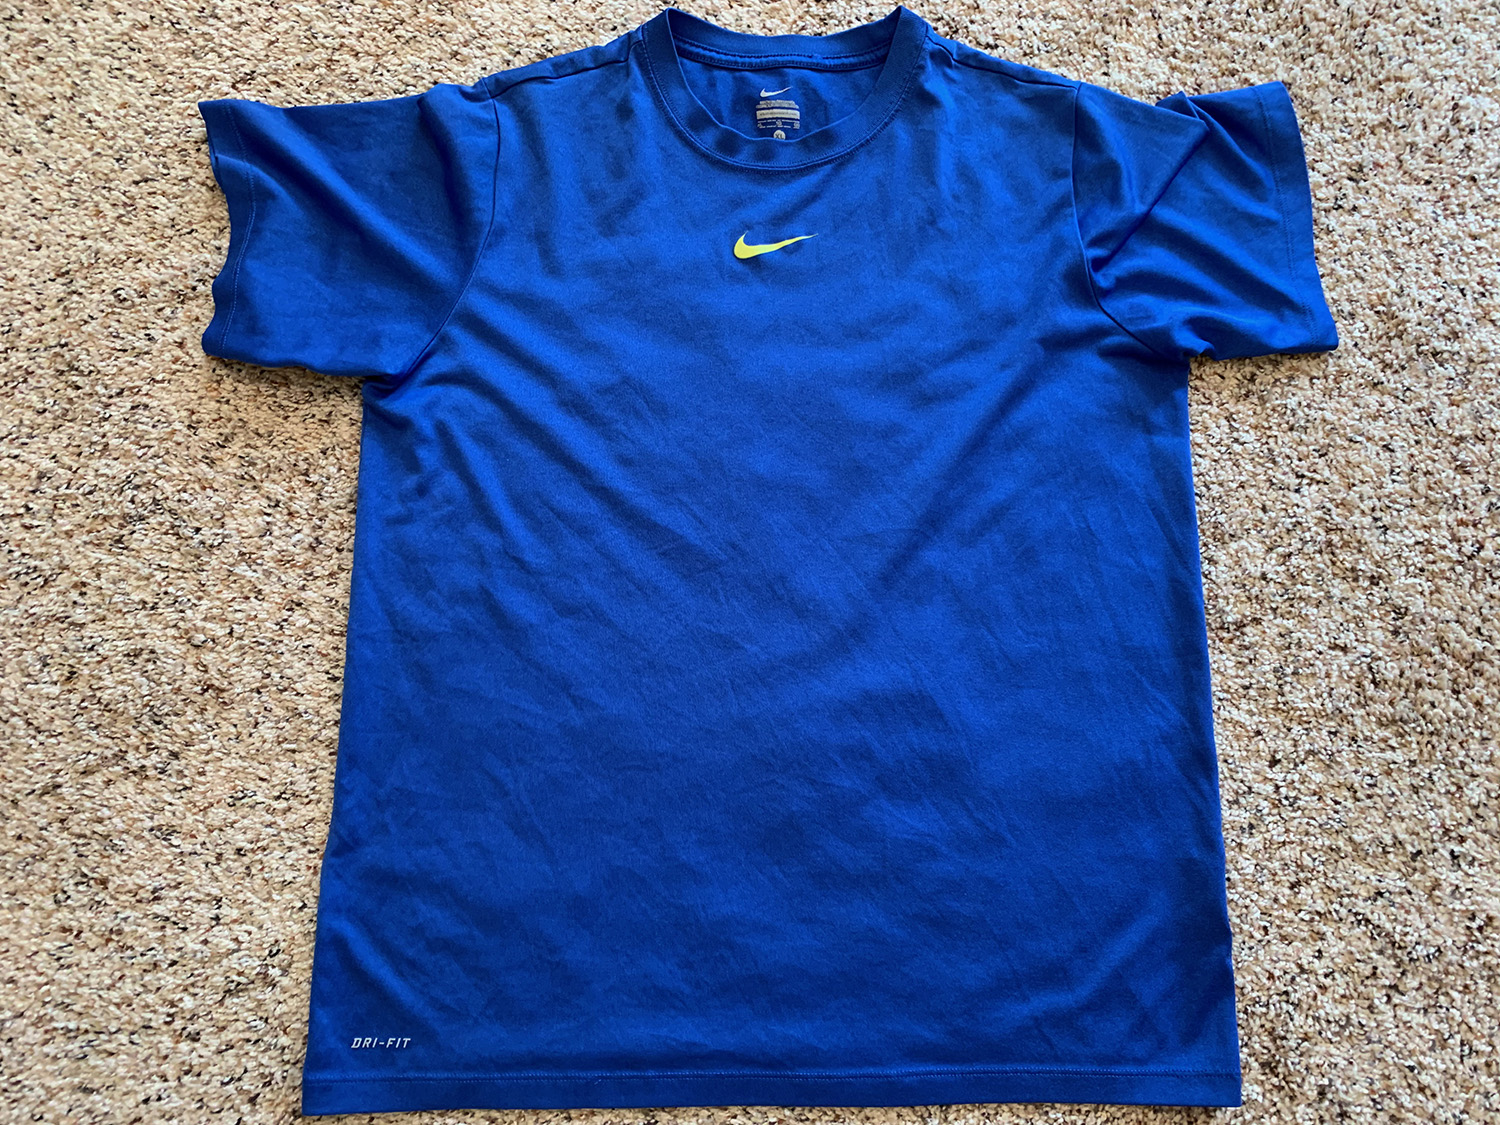 Nike Youth Dri-Fit Blue Polyester T-Shirt Size XL